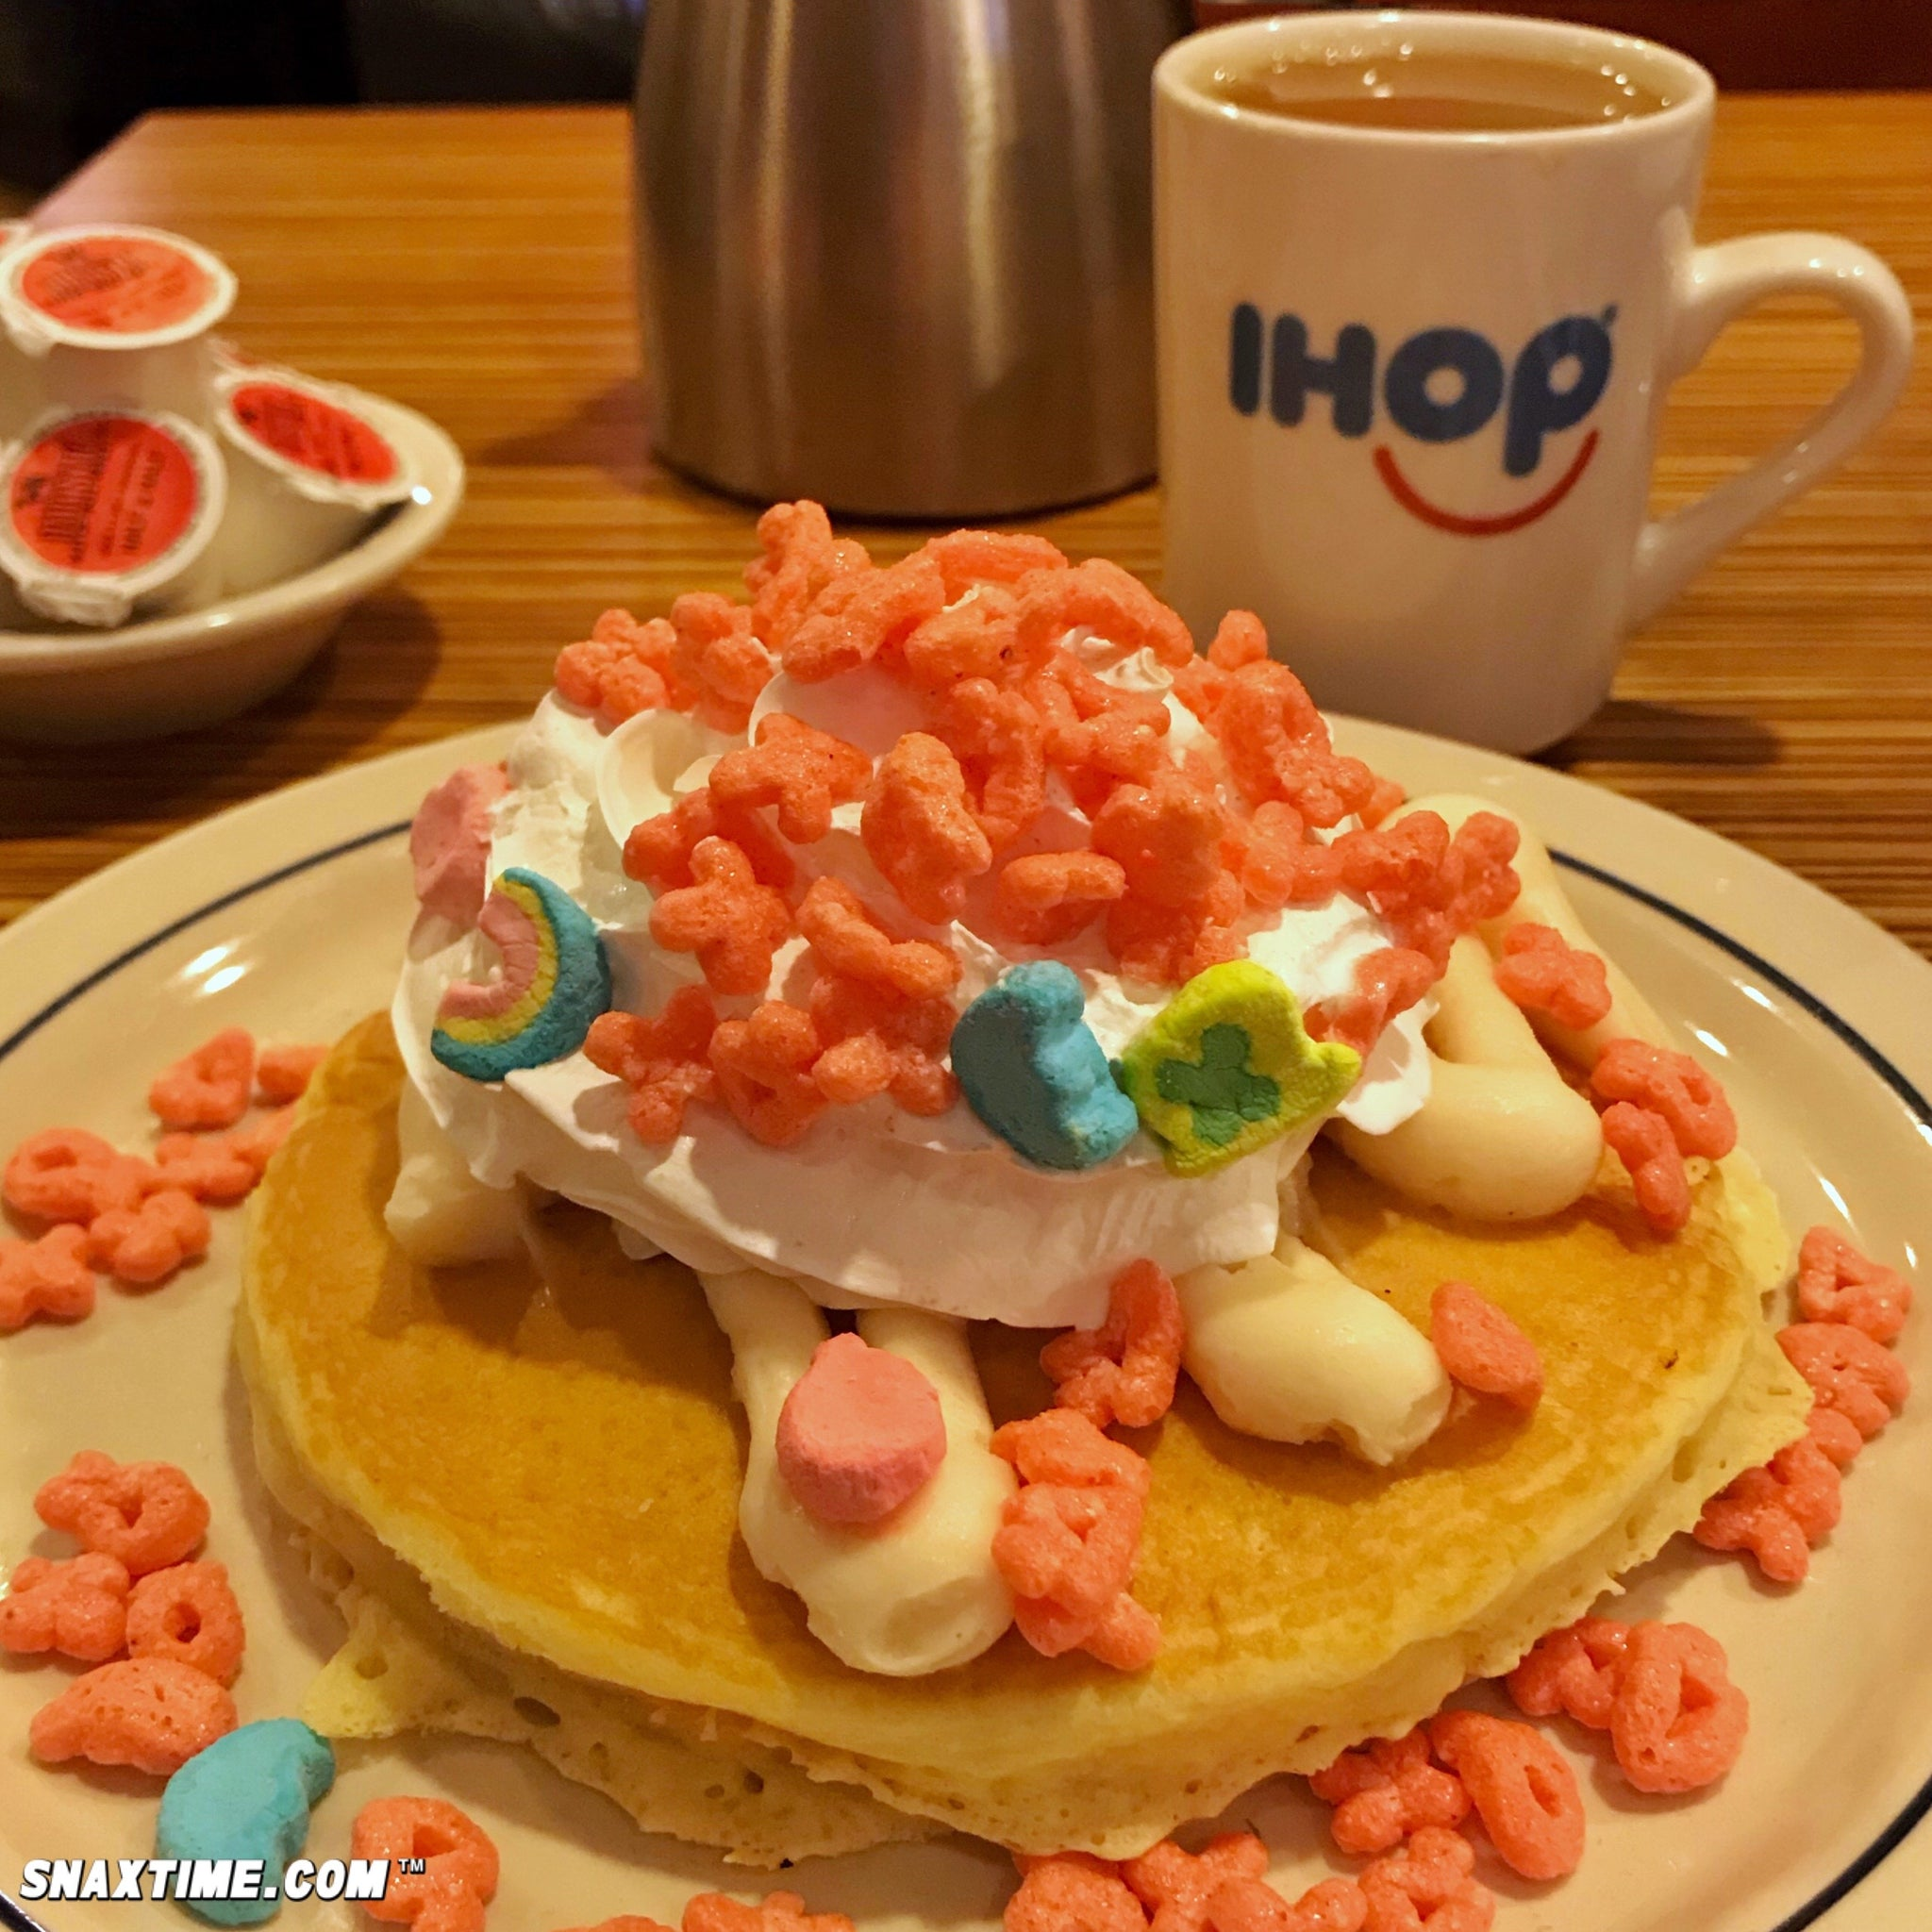 IHOP Cereal Pancakes